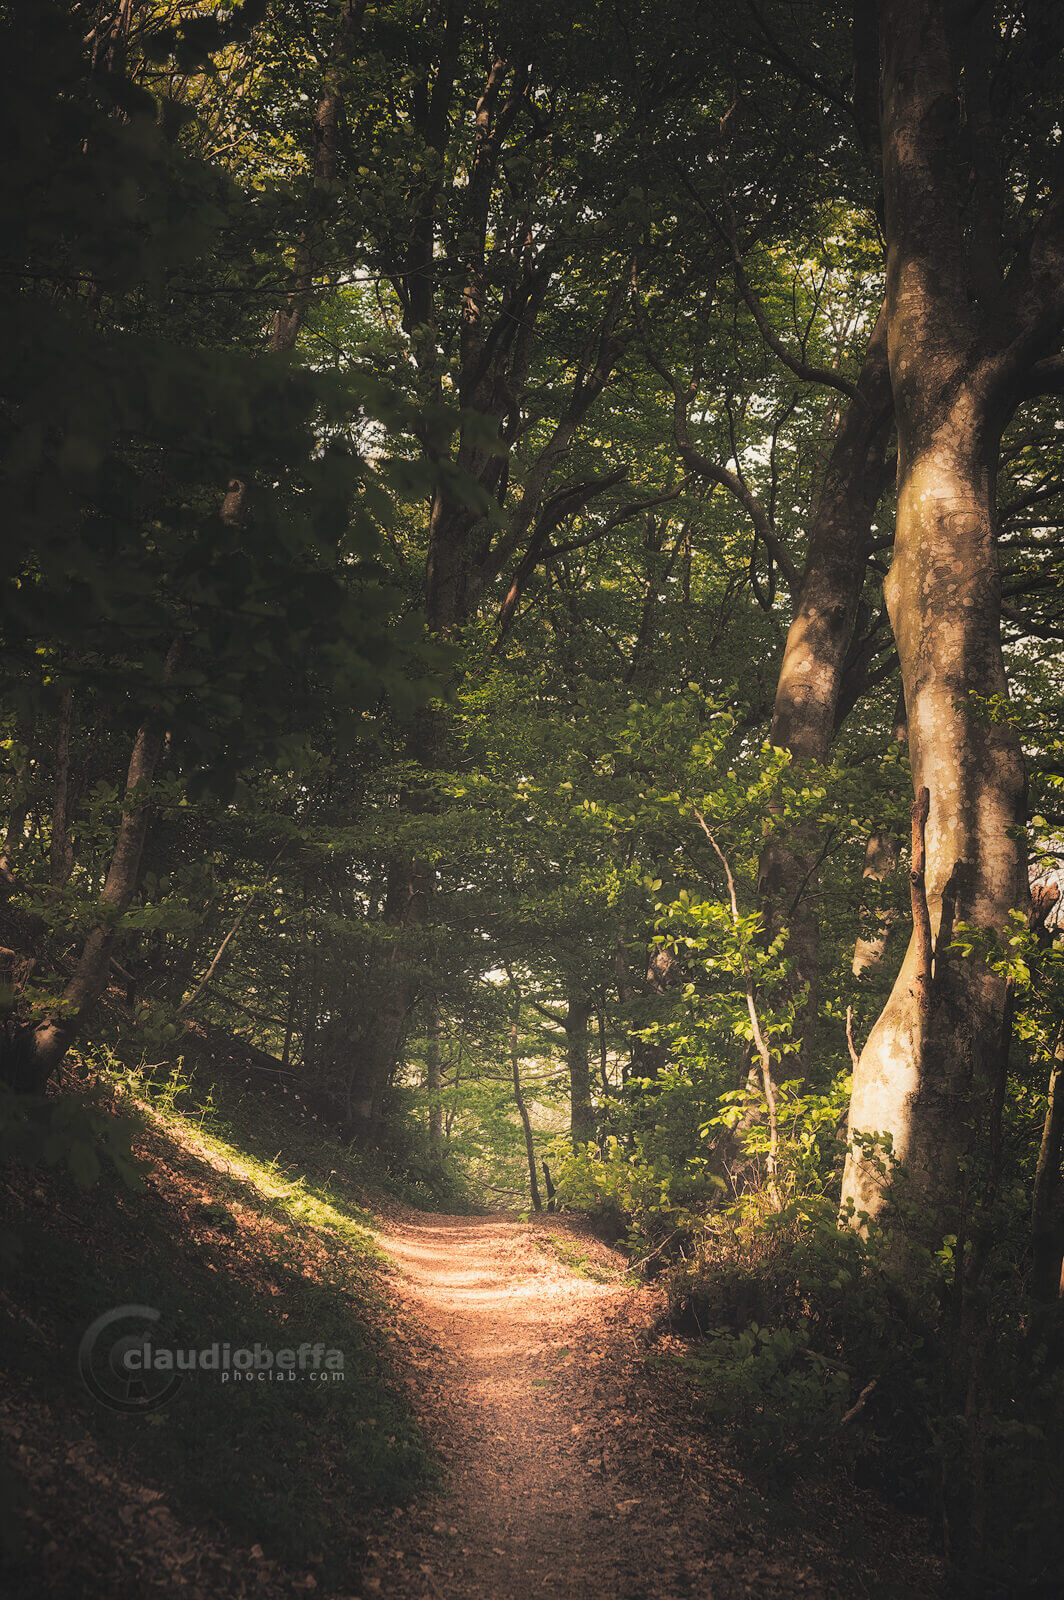 Path, Forest, Woods, Mount Cucco, Umbria, Italy, Nature, Trees, safe path, beechwood, light